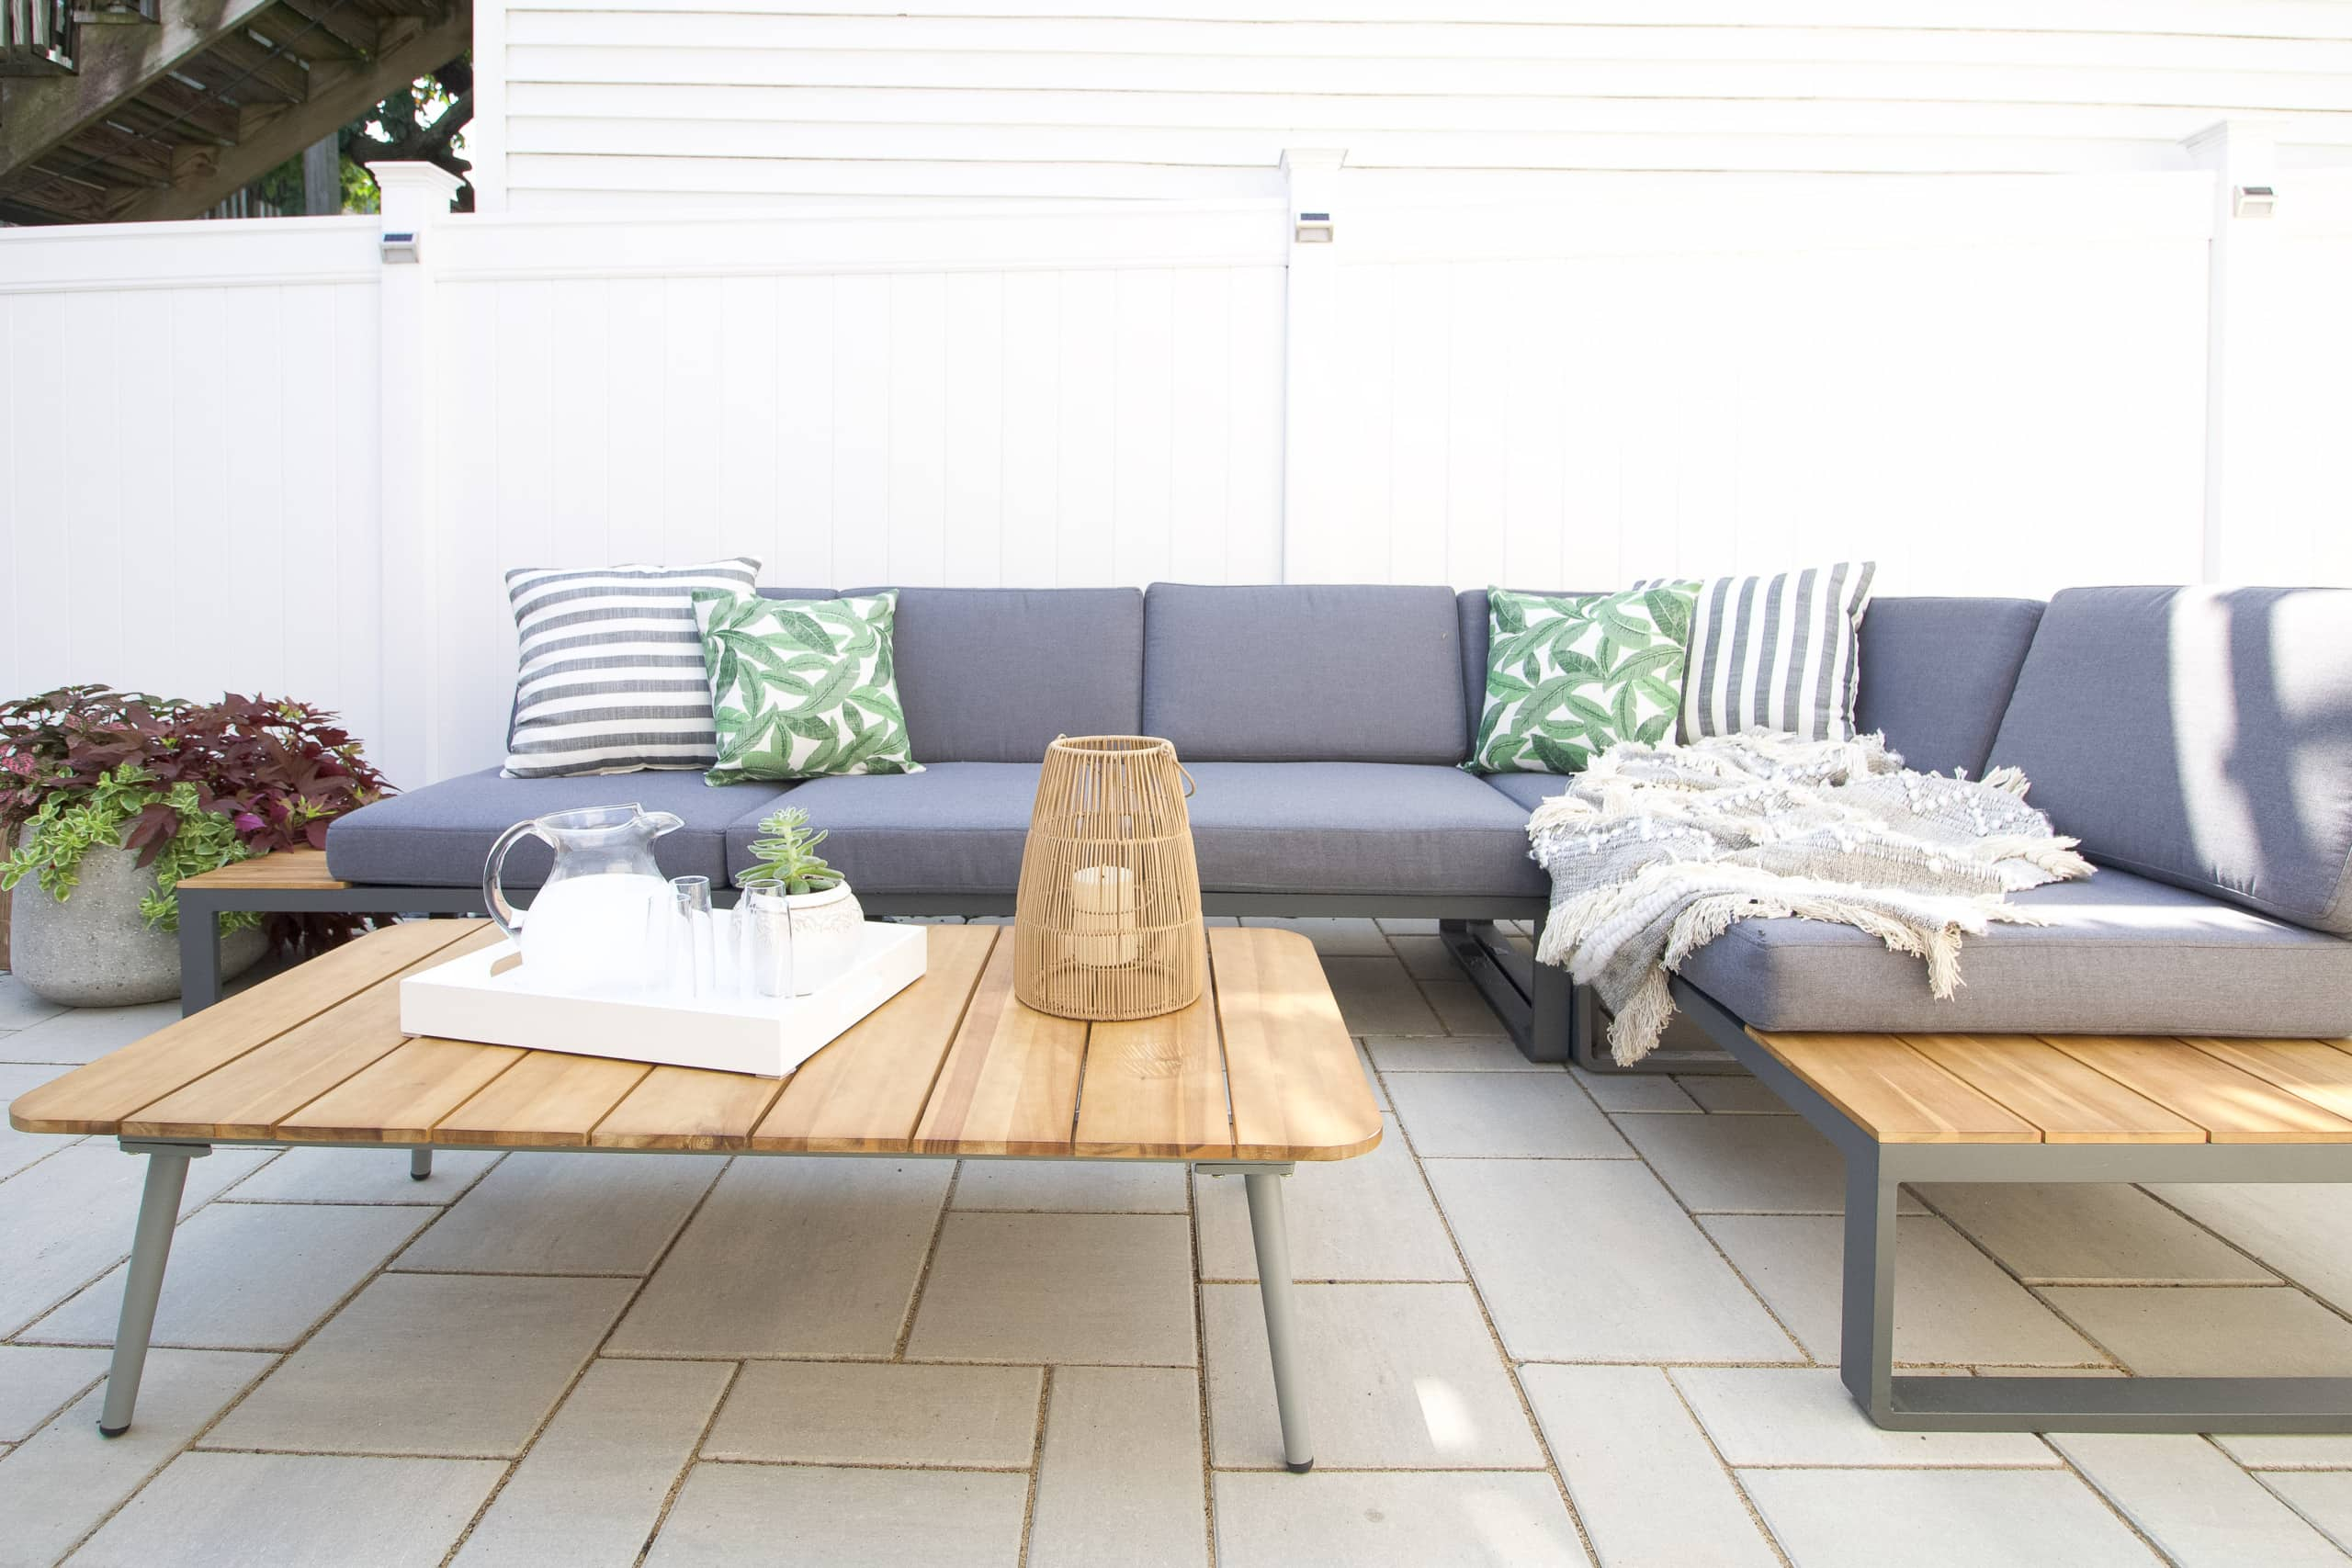 Our outdoor sectional on our new patio